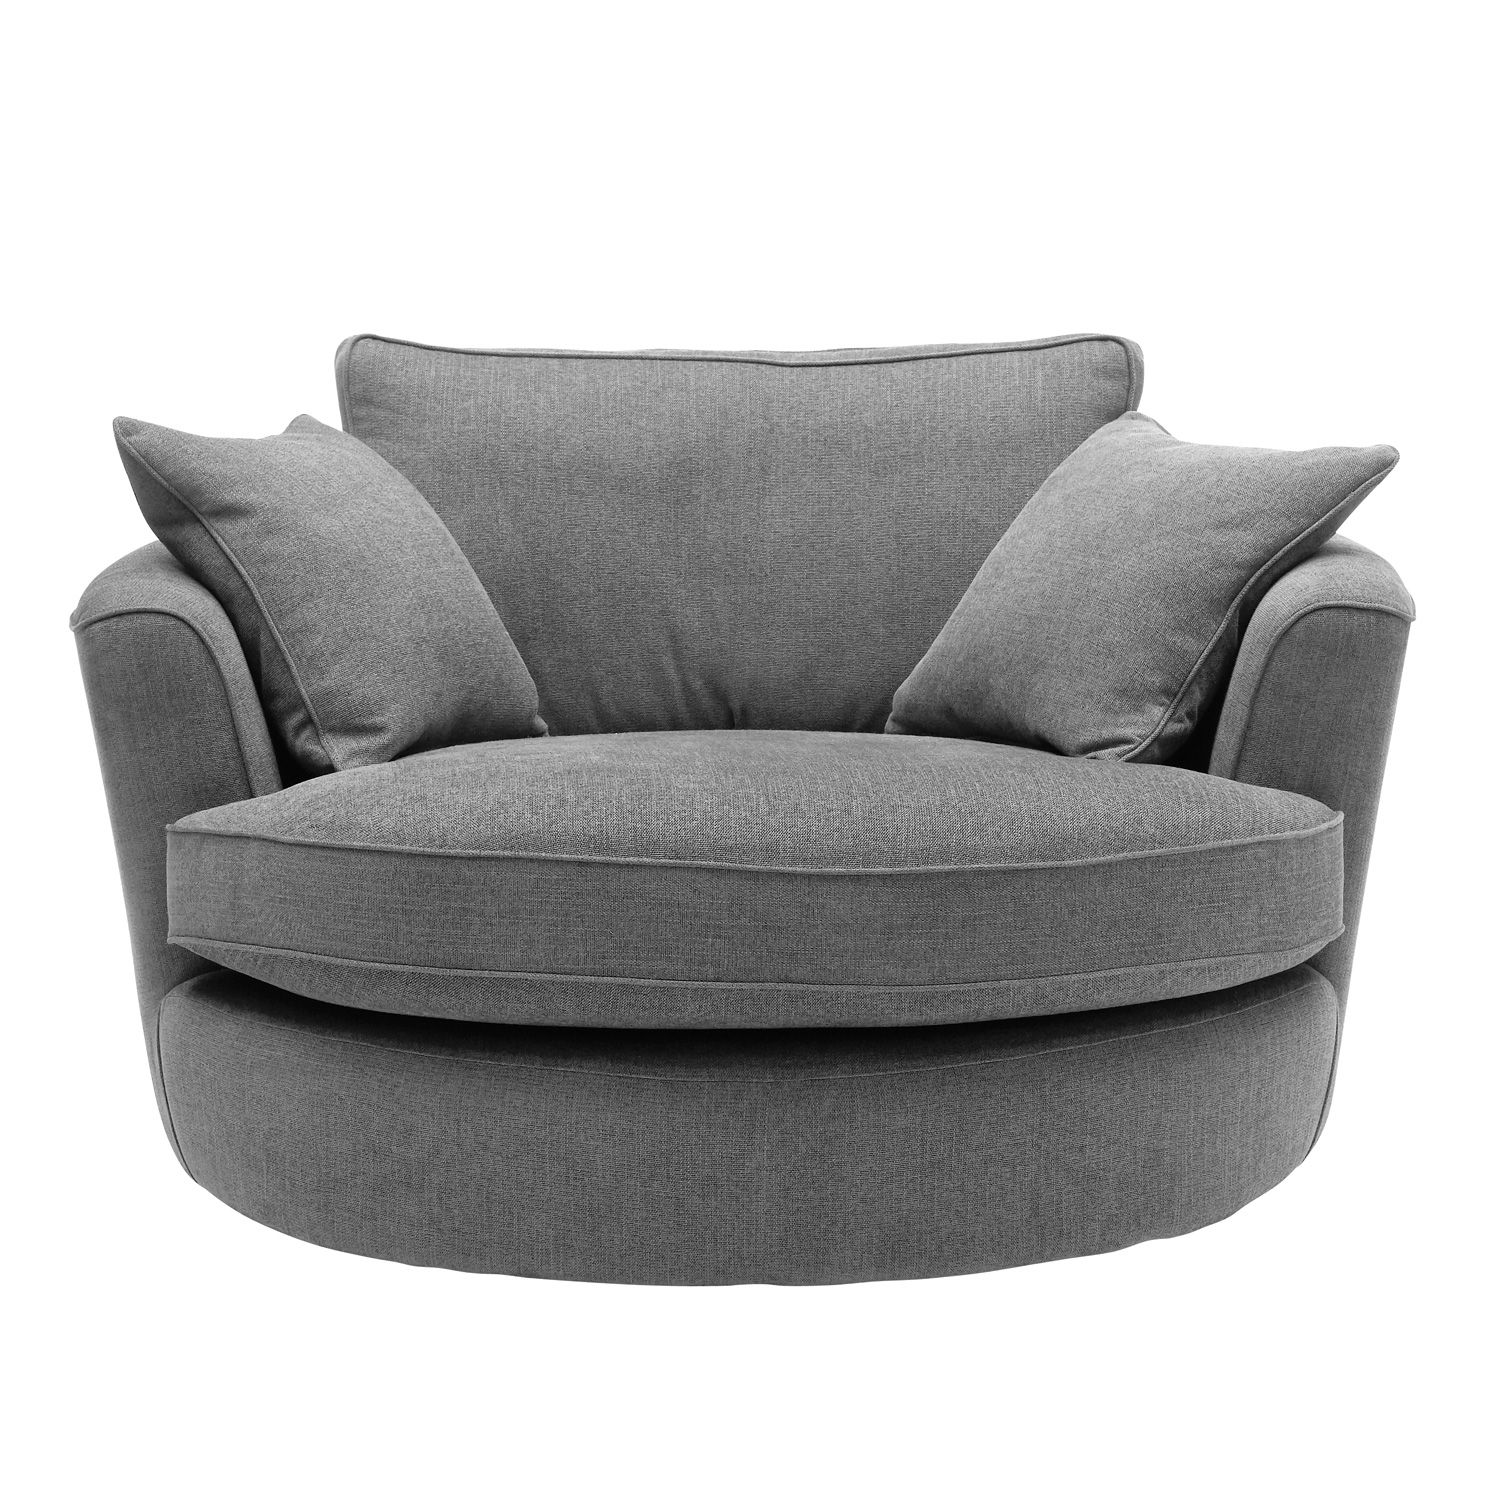 Heal s   Waltzer Swivel Loveseat Bocaccio Fabric   Loveseats   Sofas     Heal s   Waltzer Swivel Loveseat Bocaccio Fabric   Loveseats   Sofas    Furniture LOVE LOVE